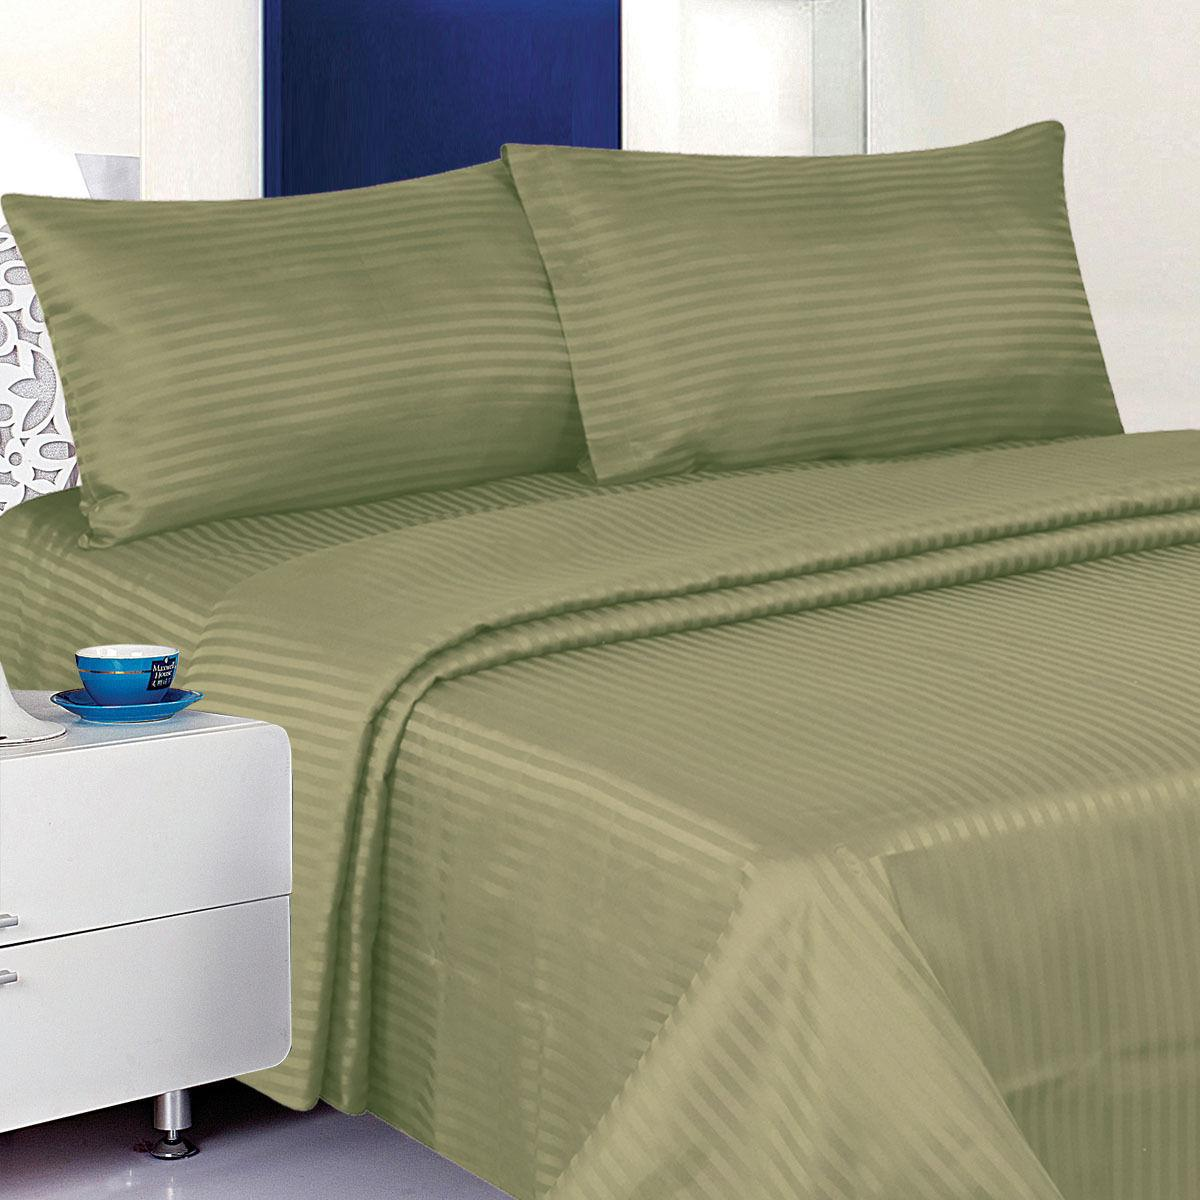 1800 Count Bed Sheet Set Twin-Full-Queen-King